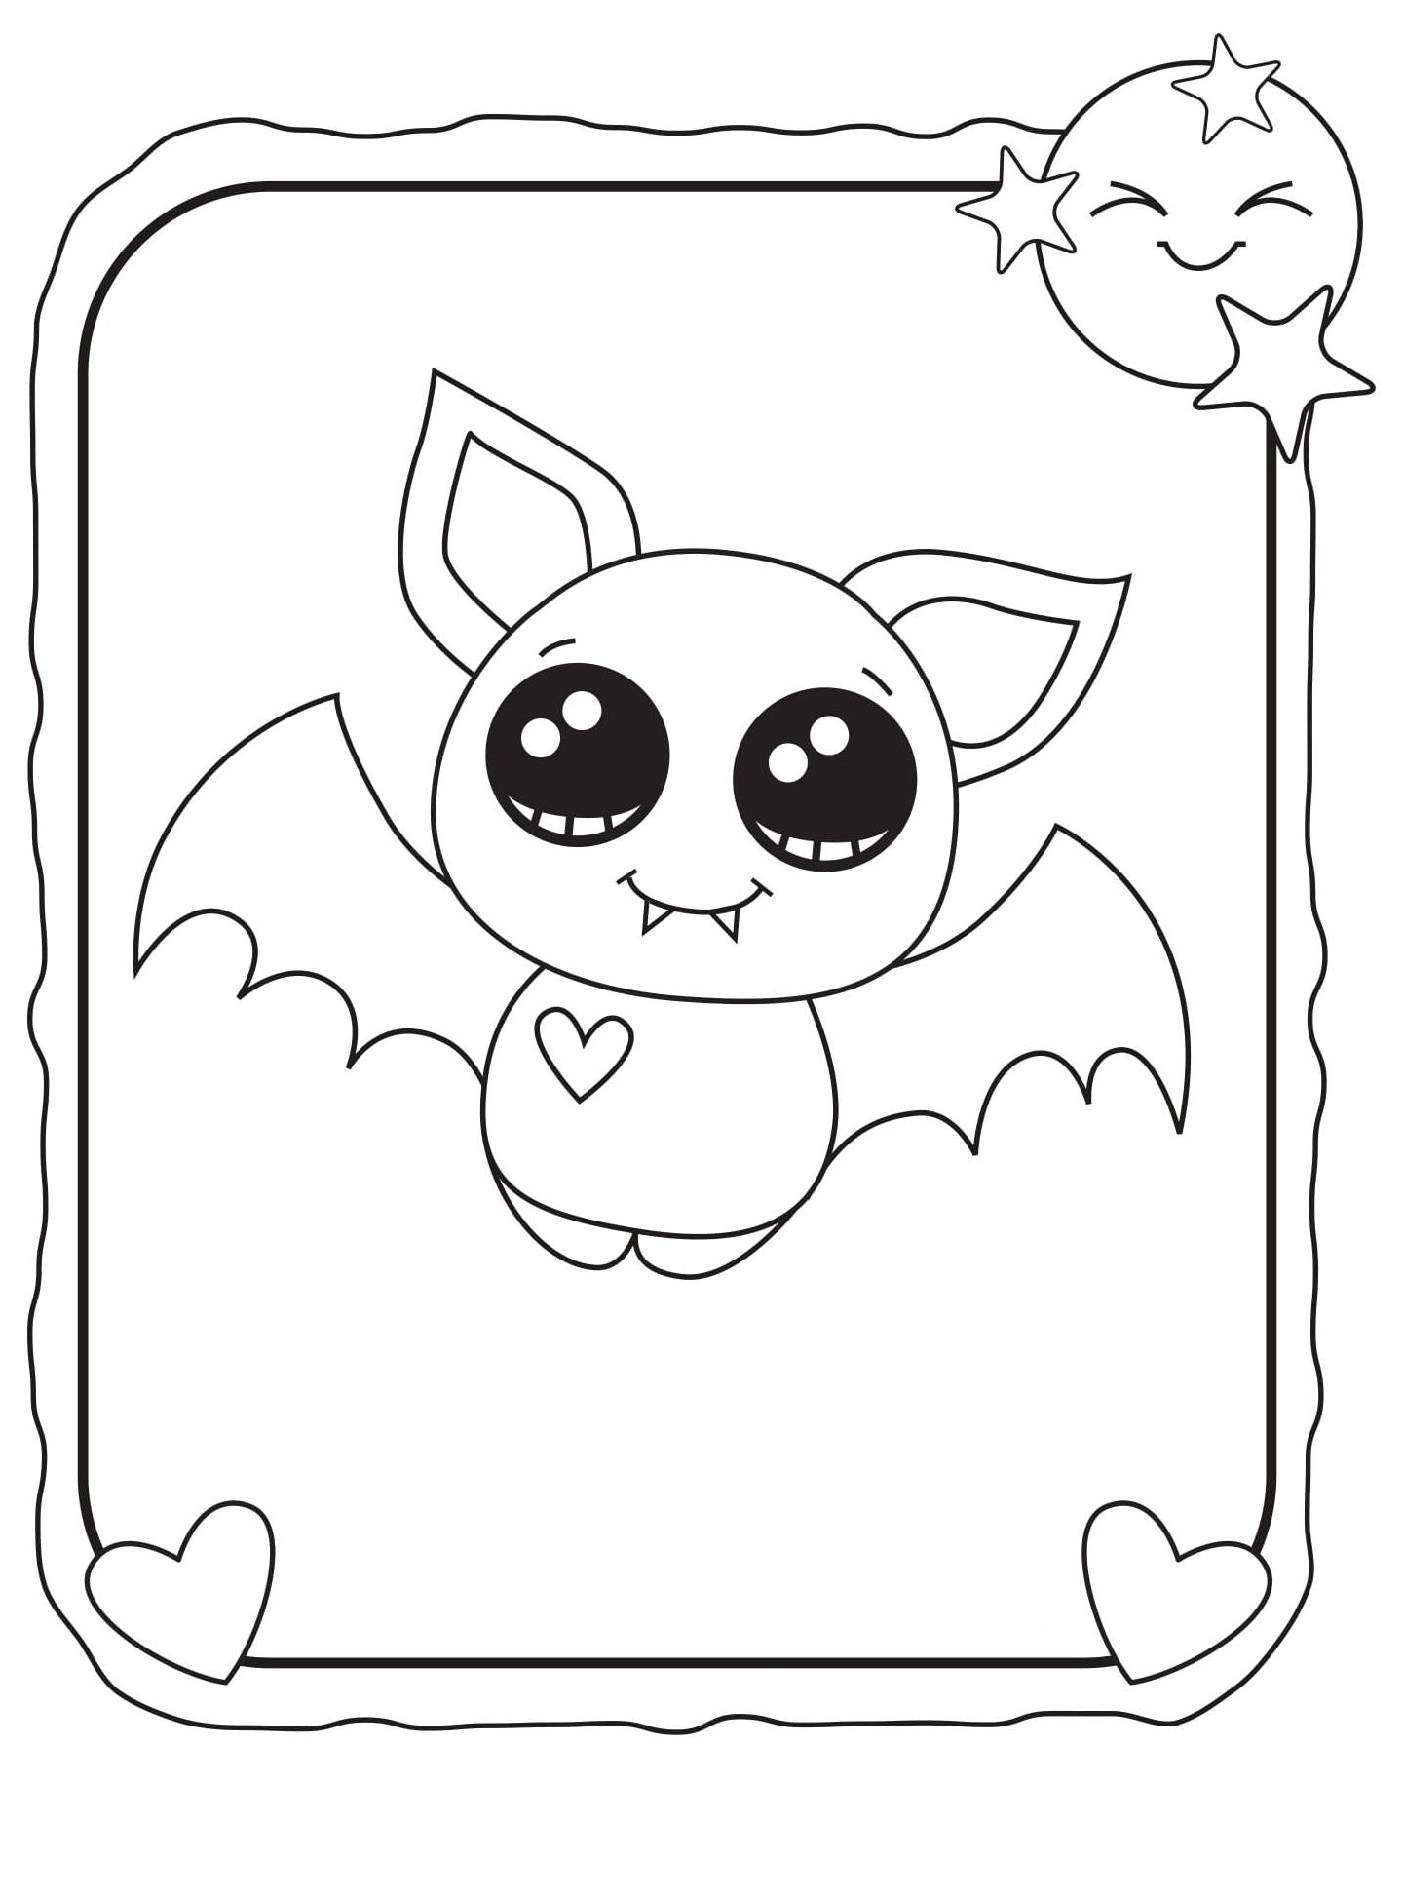 ddlg-coloring-pages-2